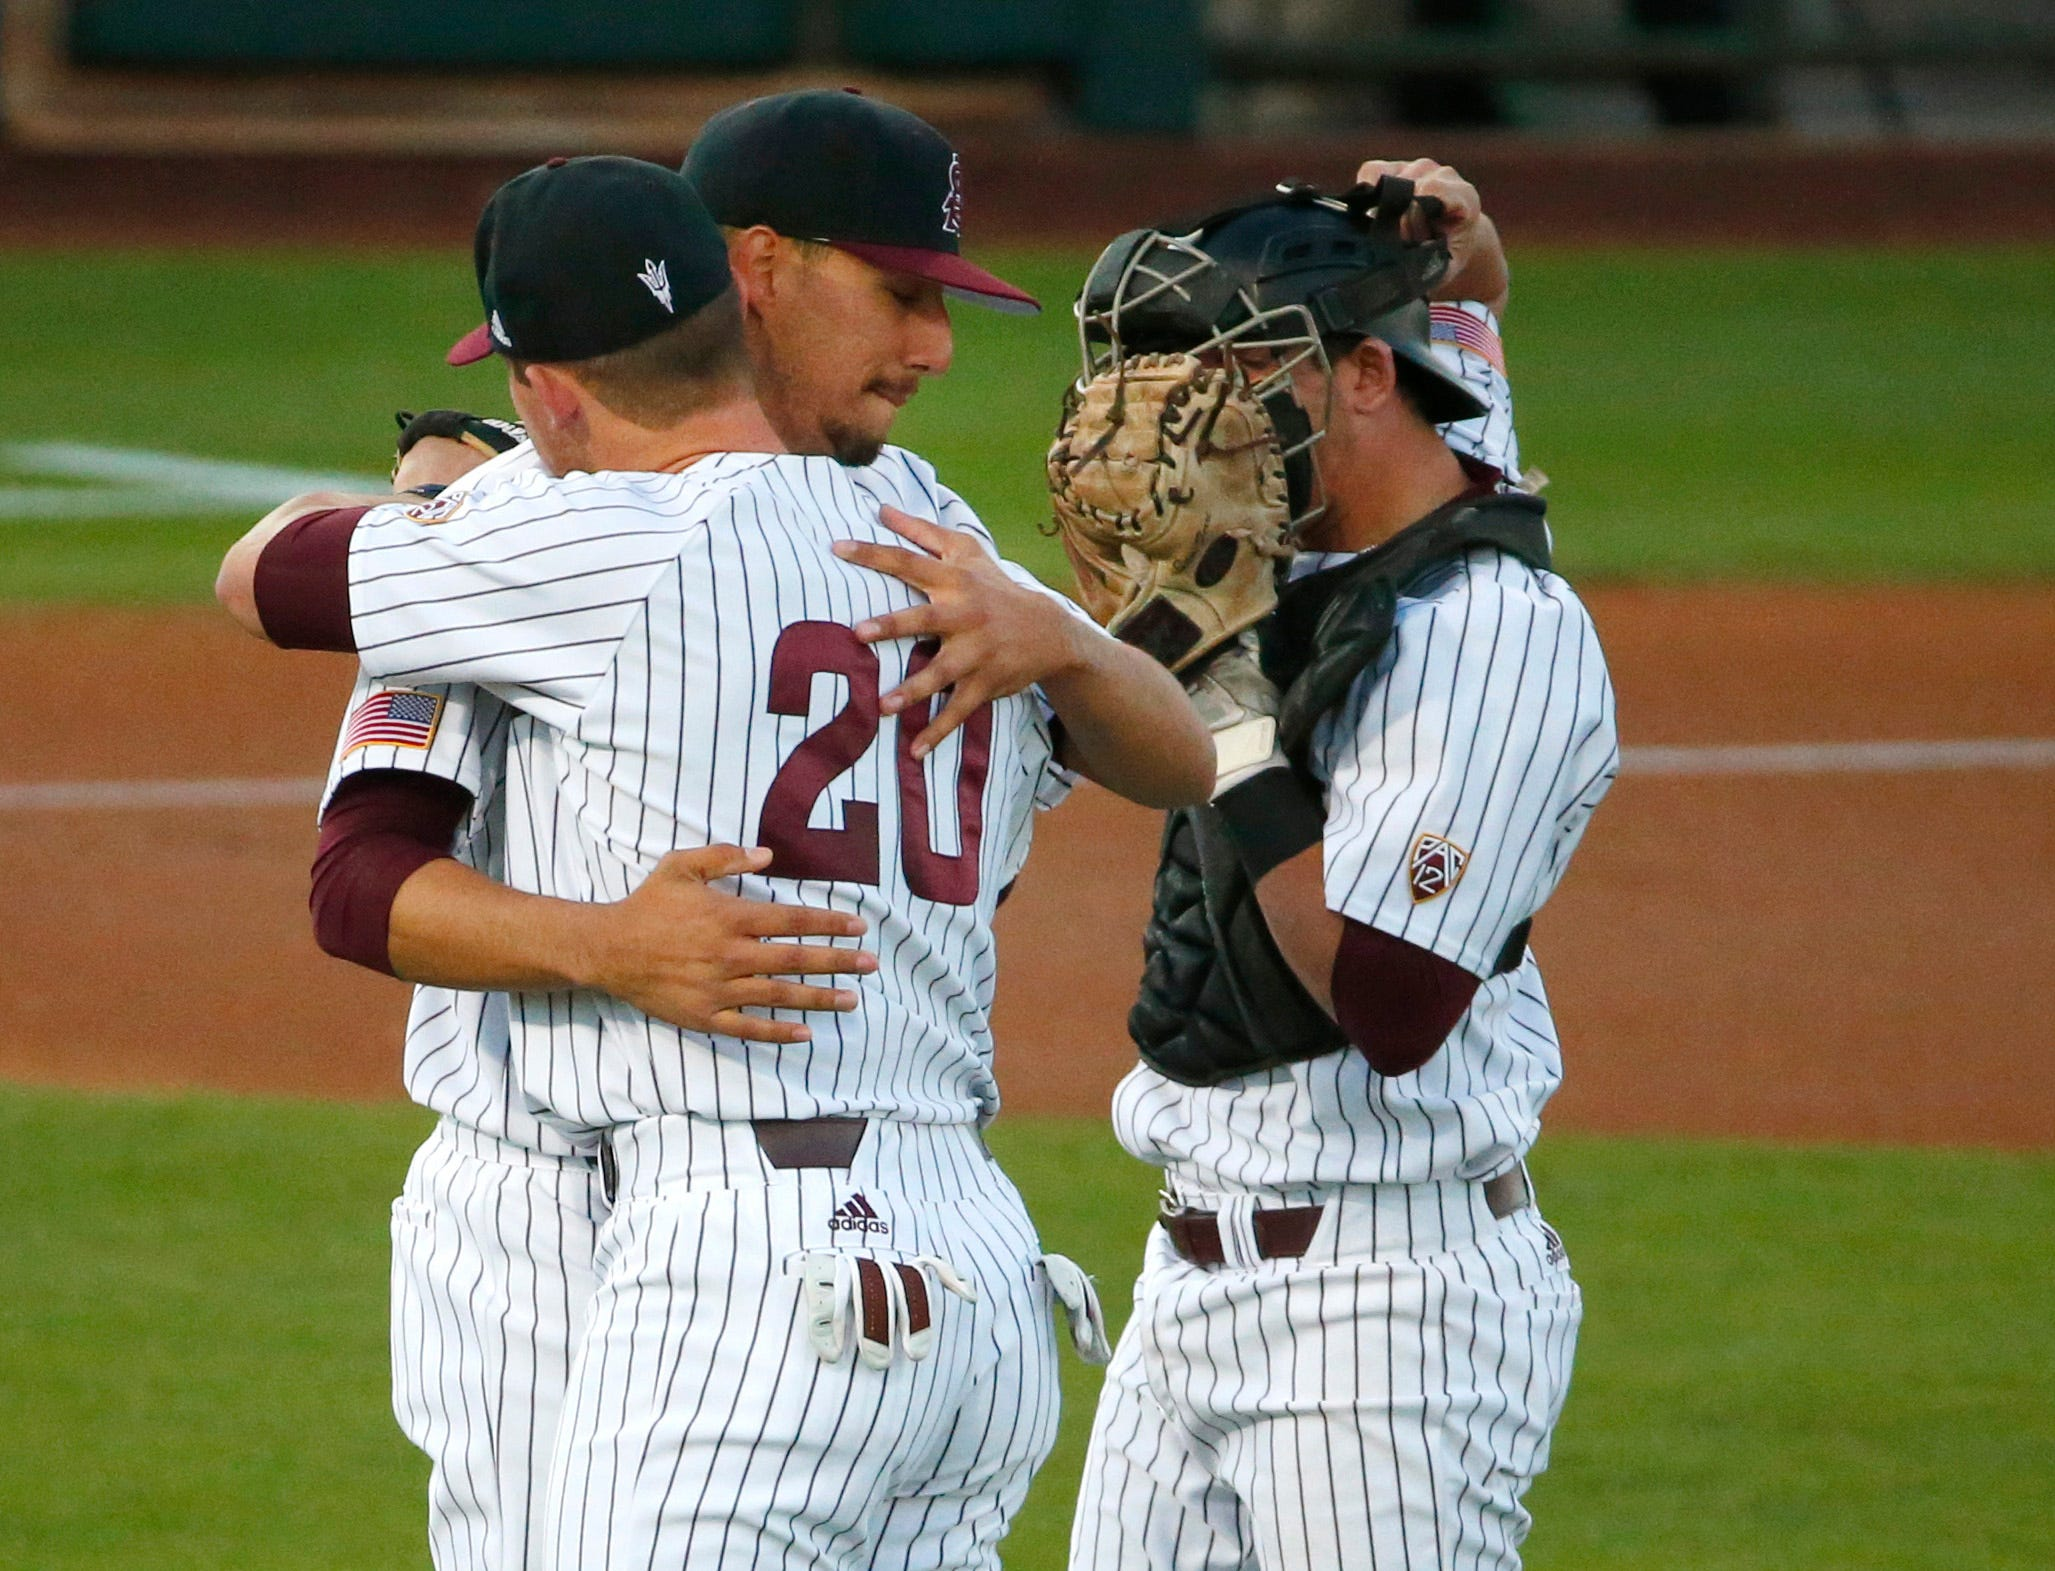 ASU RHP Sam Romero (26) gets a hug from first baseman Spencer Torkelson (20) before taking the mound during a baseball game against New Mexico at Phoenix Municipal Stadium on March 13, 2019.